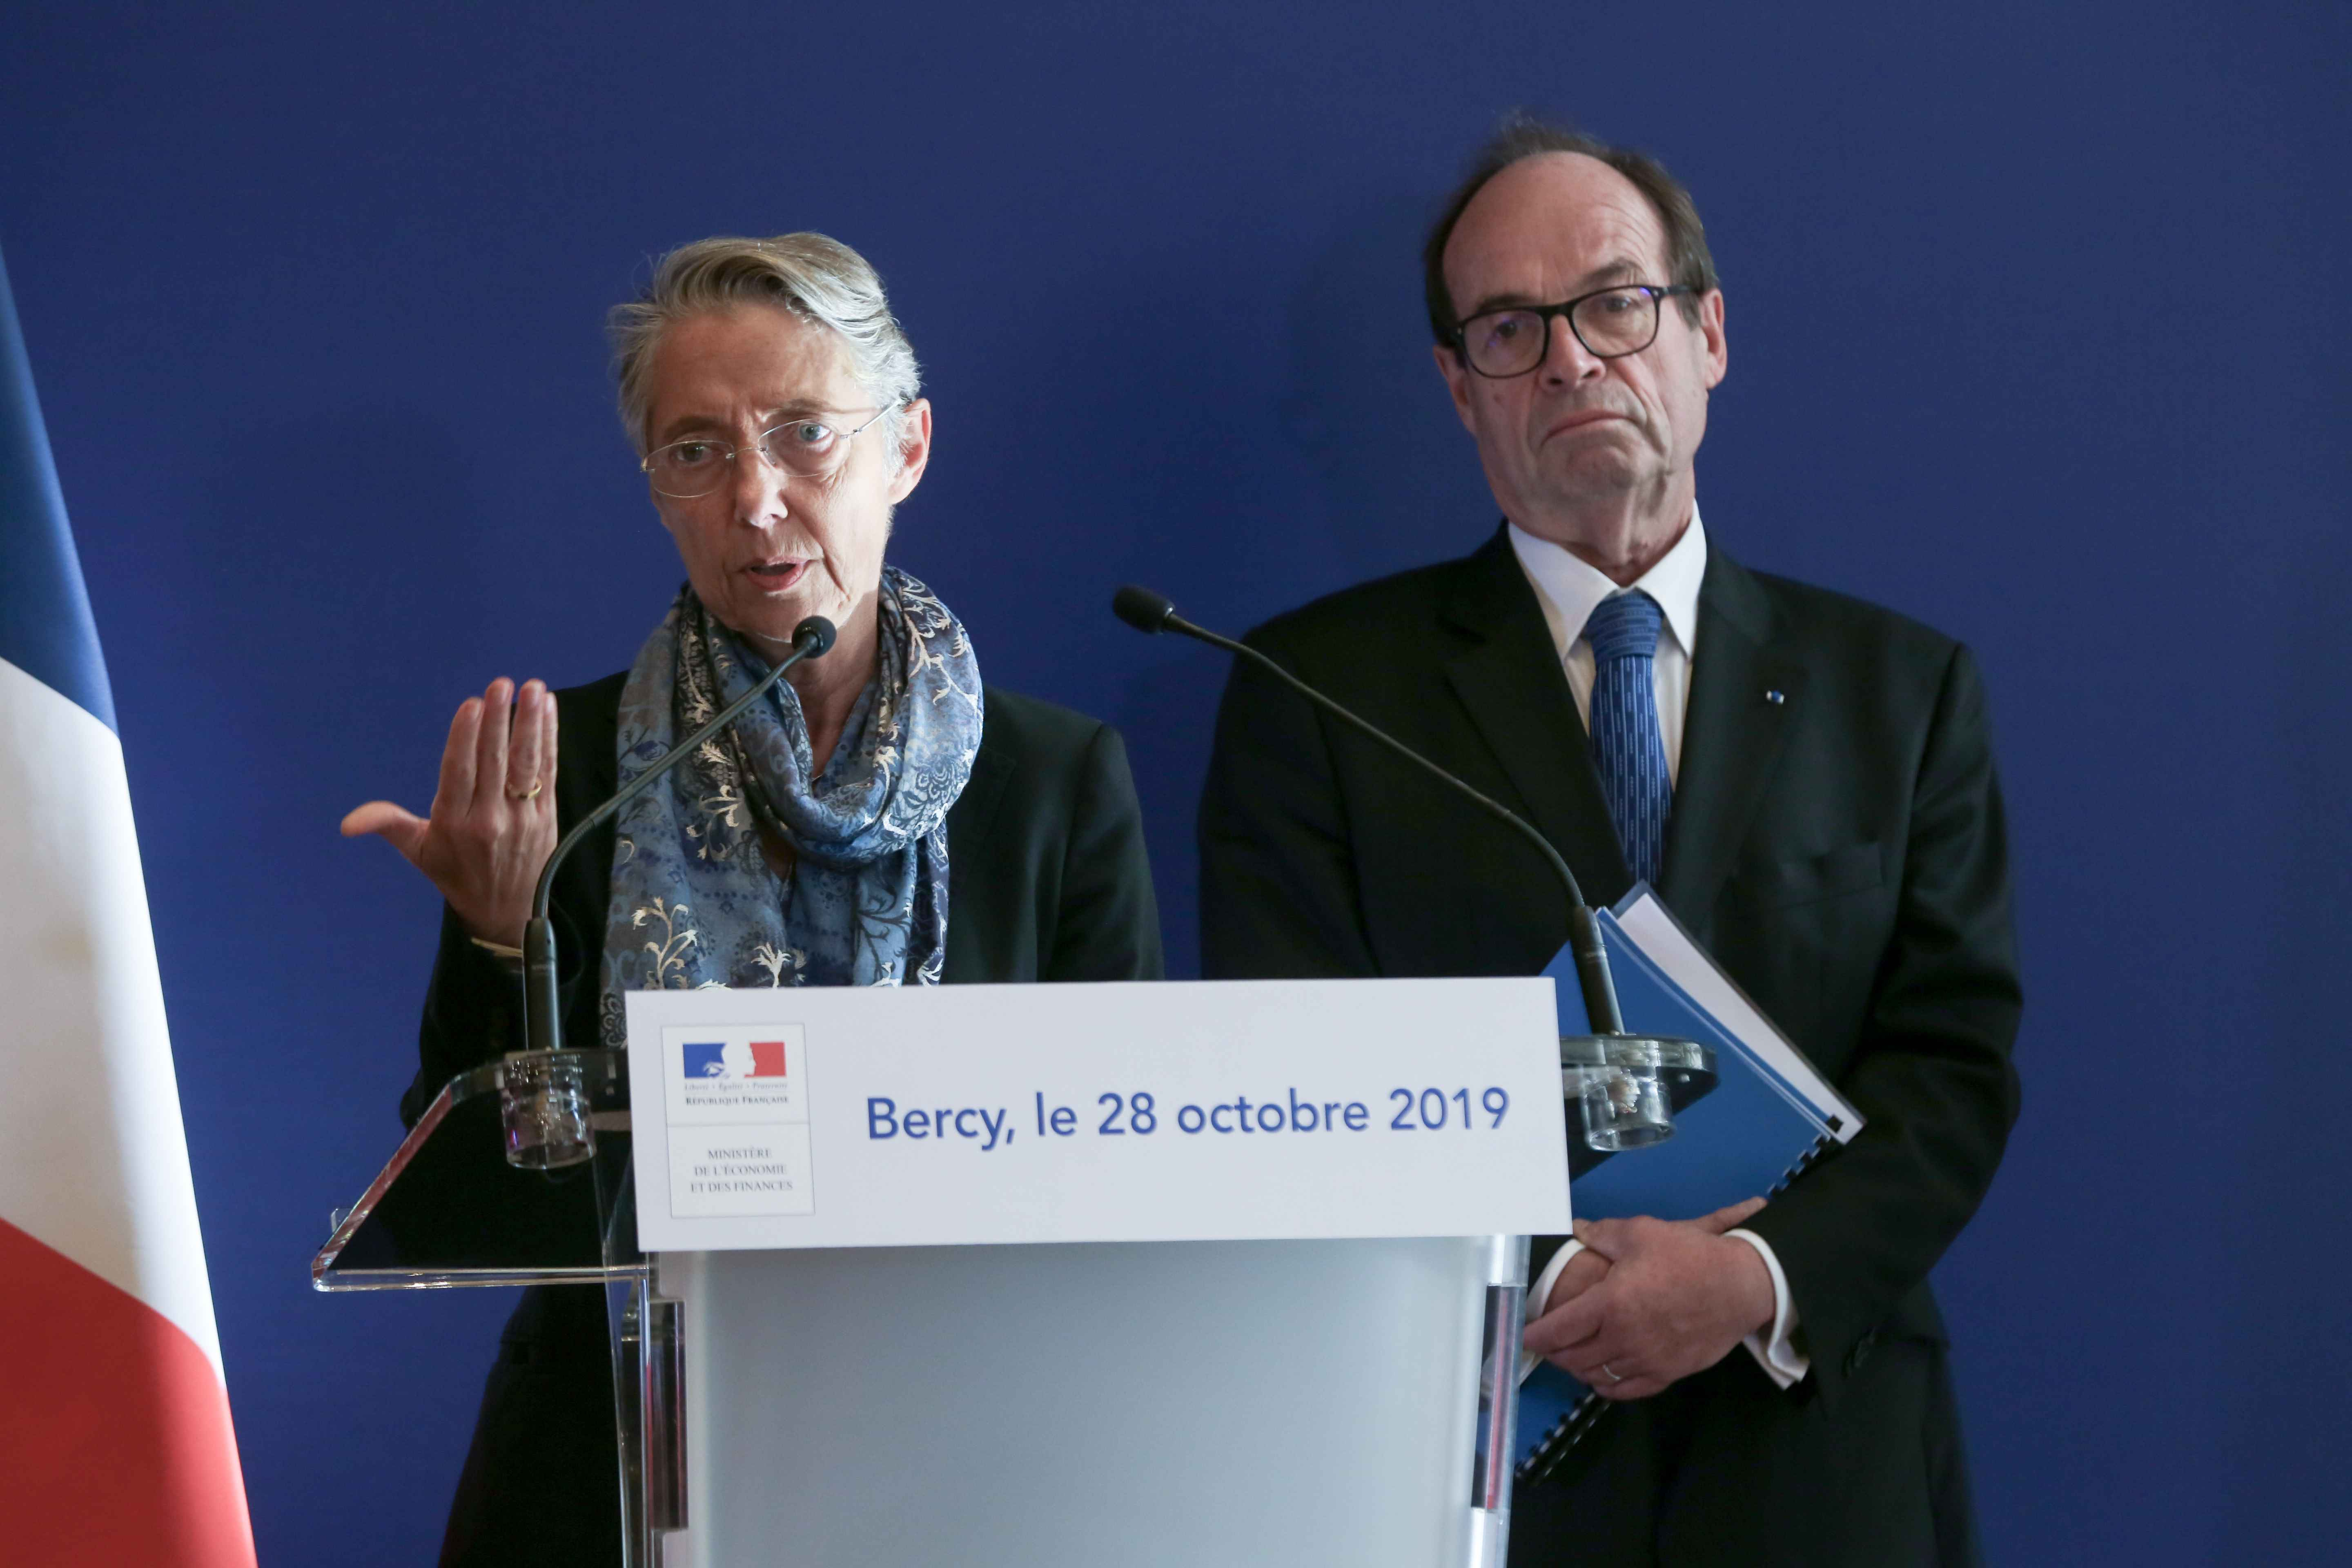 (From L to R) French Minister for the Ecological and Inclusive Transition Elisabeth Borne and report head Jean-Martin Folz give a joint press conference to present a report concerning the construction of the EPR at the Flamanville nuclear plant, at the min